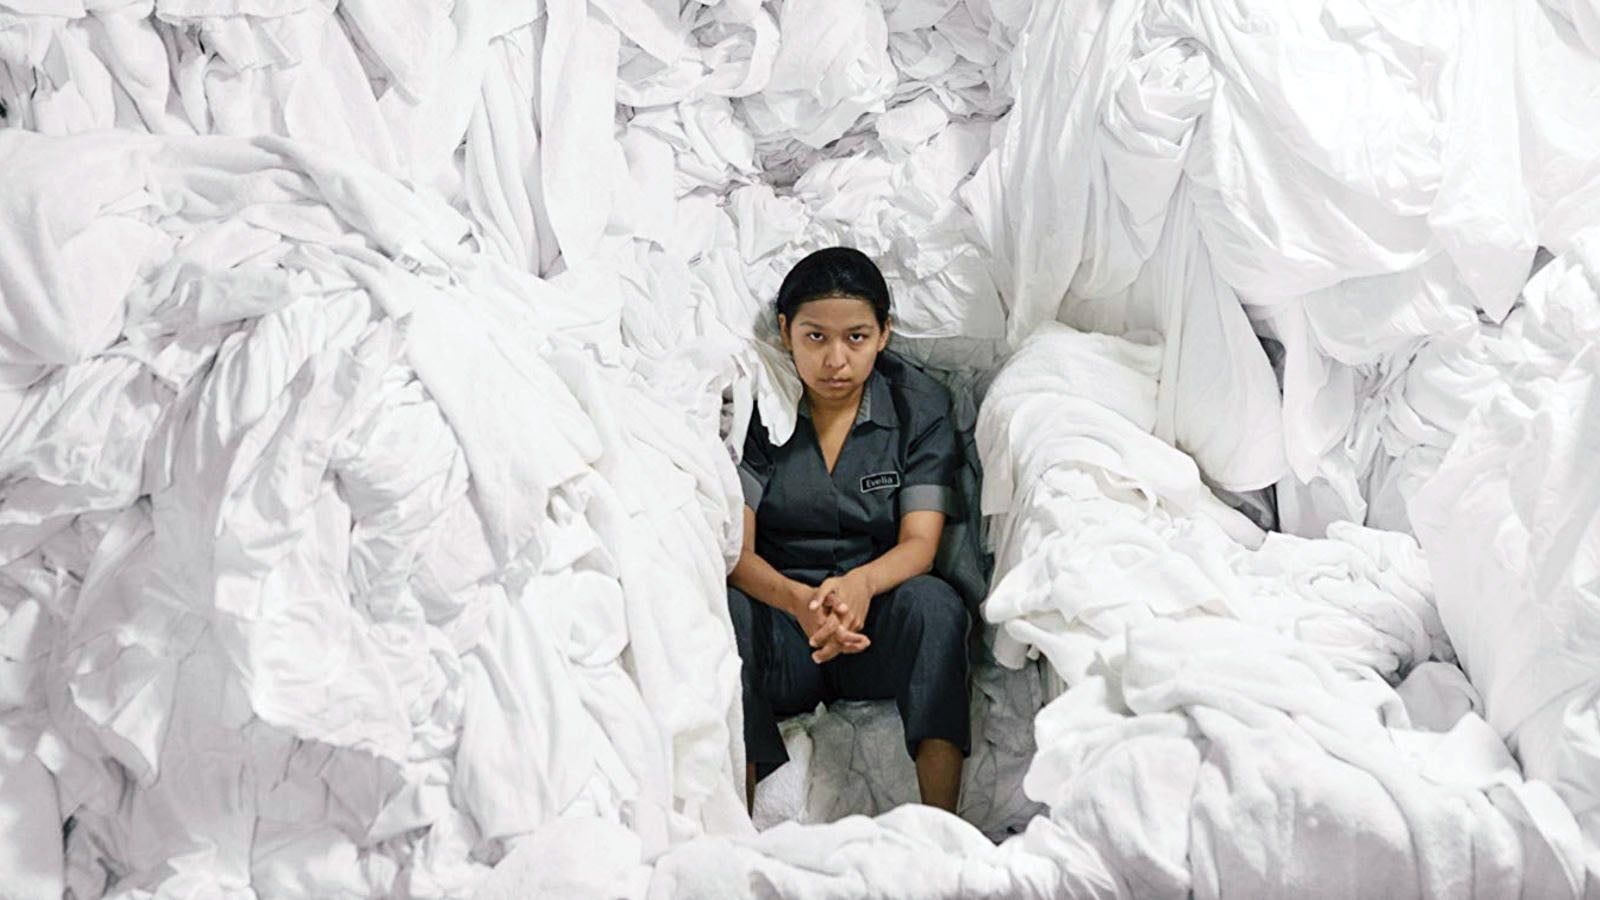 Lila Avilés's The Chambermaid paints a disconcerting portrait of a hotel worker in Mexico City